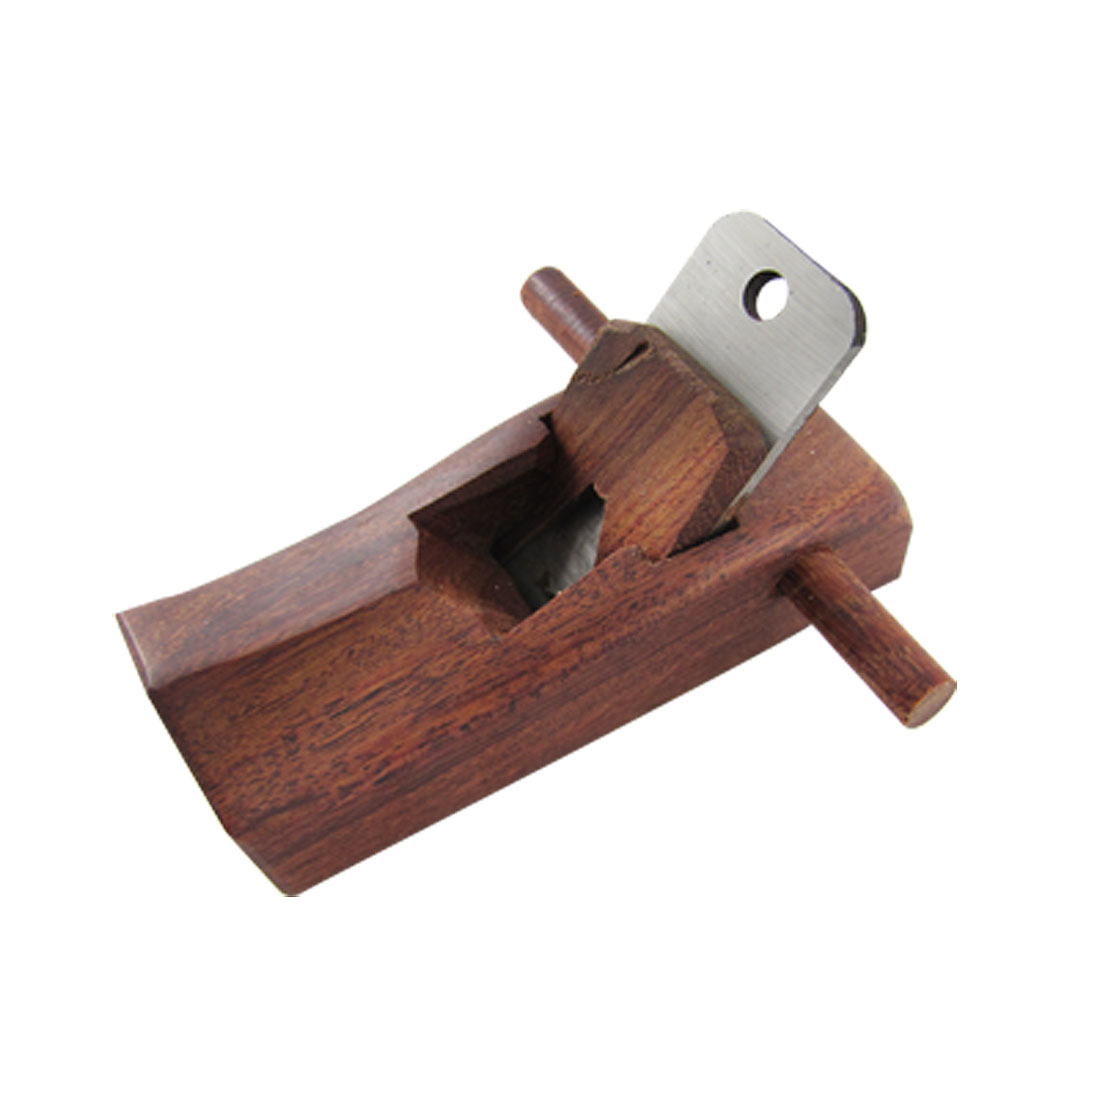 "3 3/4"" Woodworking Smooth Plane Hand Tool for Carpenters"